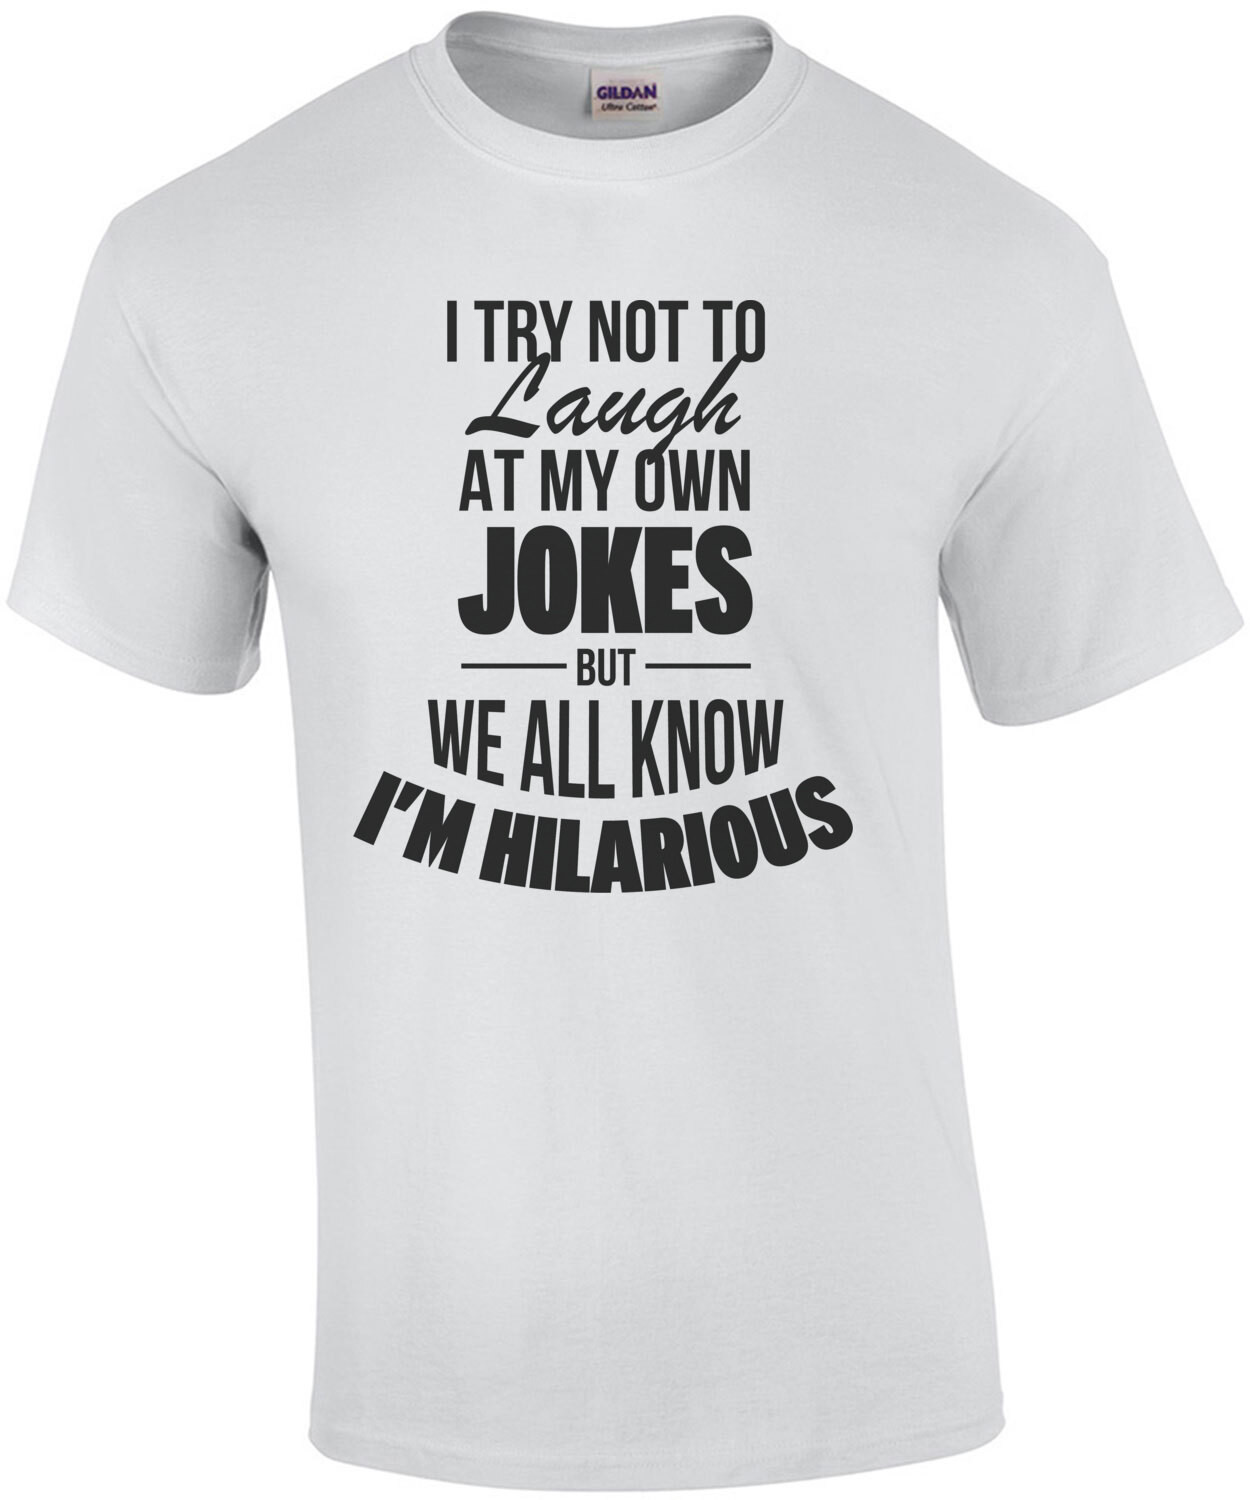 I try not to laugh at my own jokes but we all know I'm hilarious - funny t-shirt